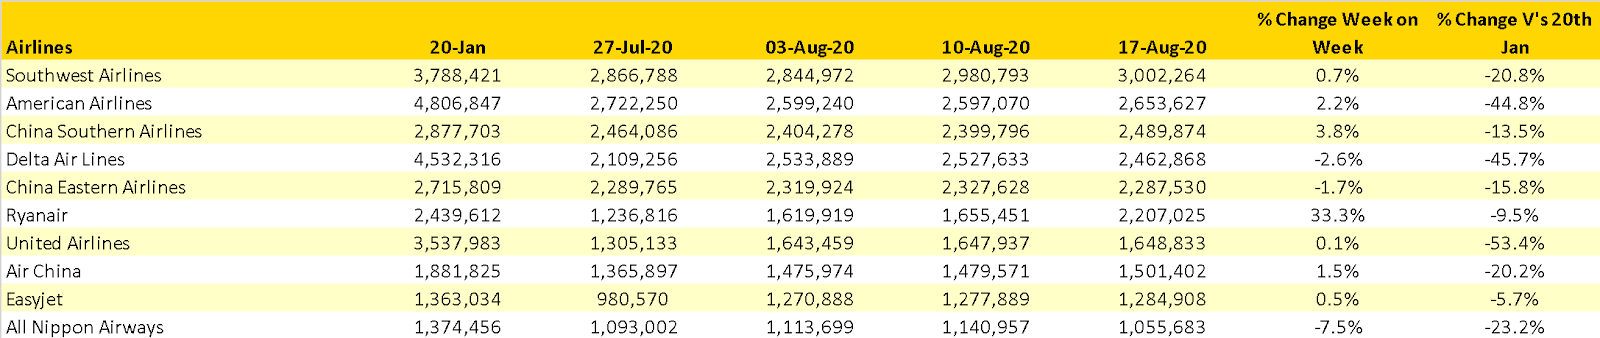 Table 3- Scheduled Capacity Top 10 Airlines